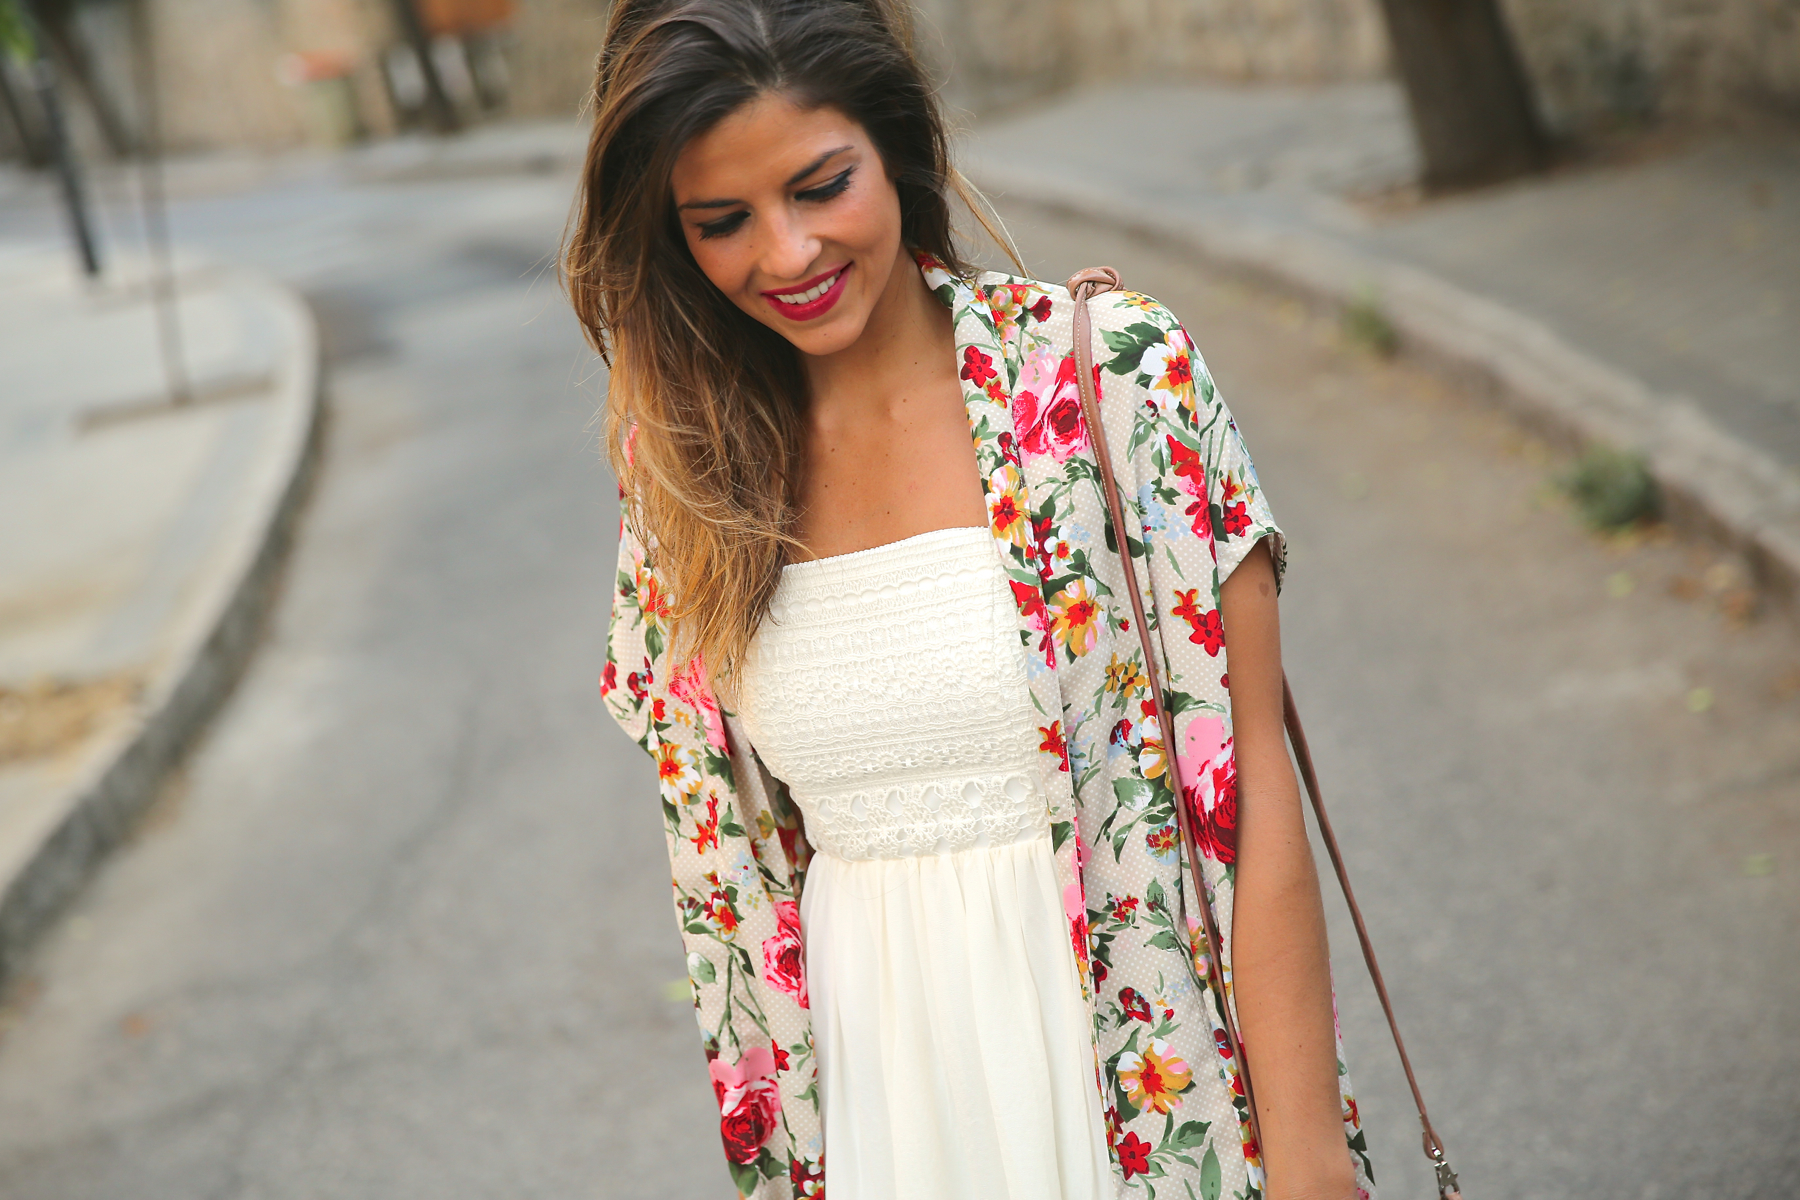 trendy_taste-look-outfit-street_style-ootd-blog-blogger-fashion_spain-moda_españa-kimono-vestido_blanco-vestido_verano-playa_beach-dress-cowboy_booties-botines_camperos-7